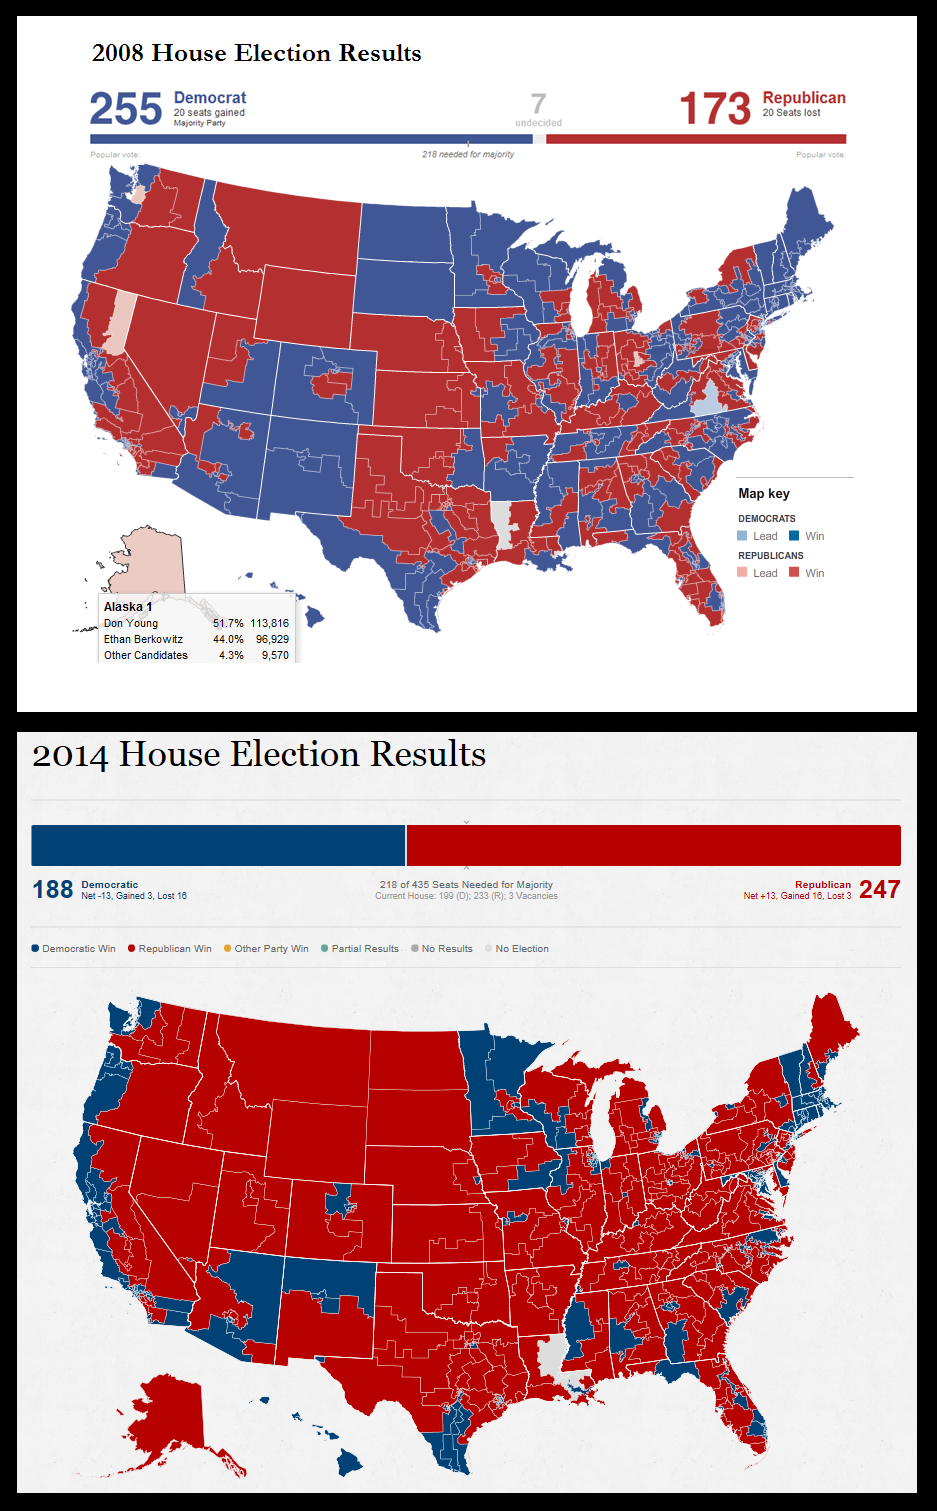 2008 vs. 2014 U.S. House Election Results | MAPS | Election results ...